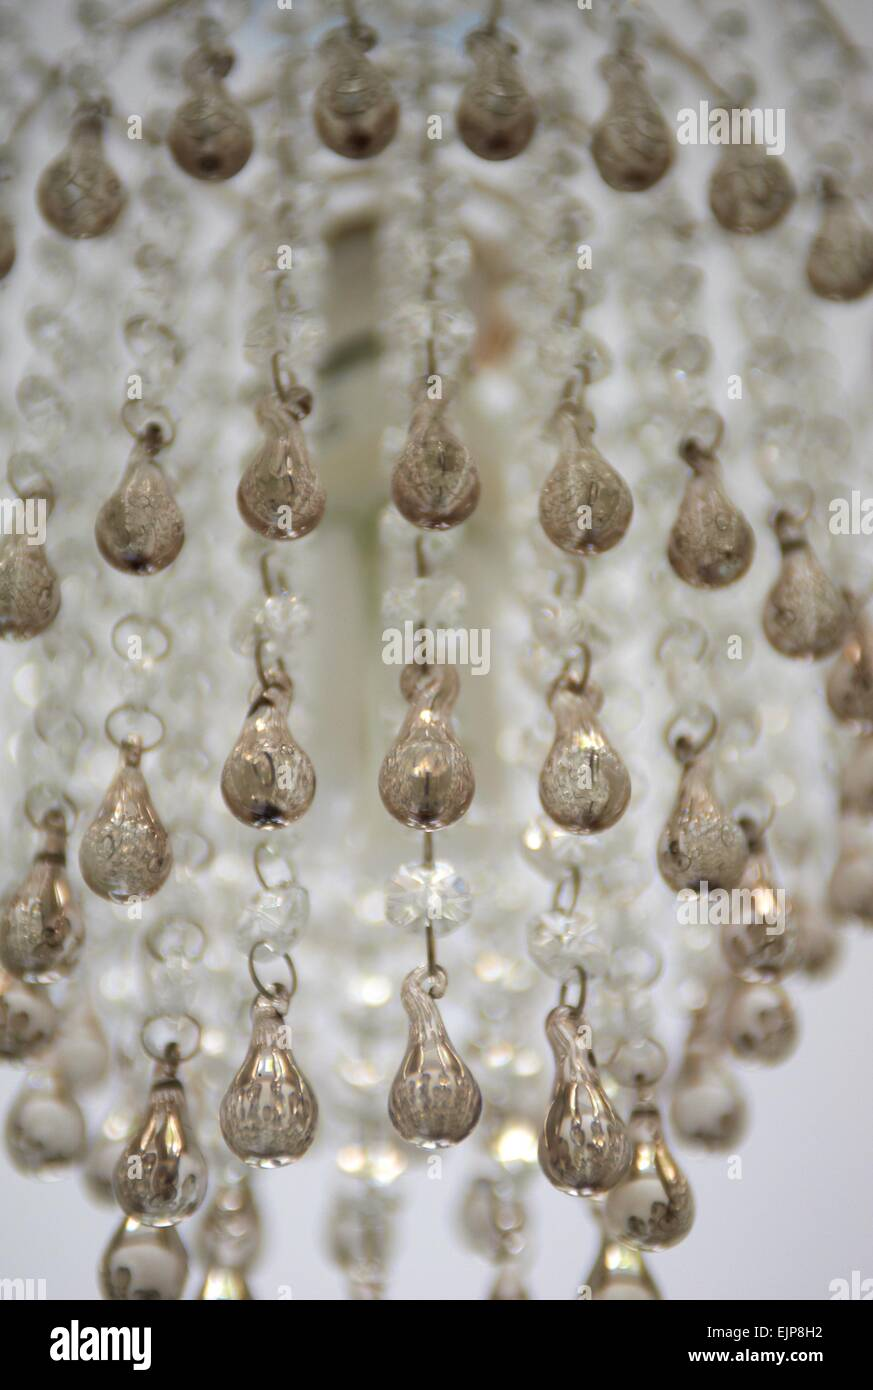 Chandelier Light Lamp Shade House Glow Bright Glass Bejeweled Jewels - Chandelier jewels crystals